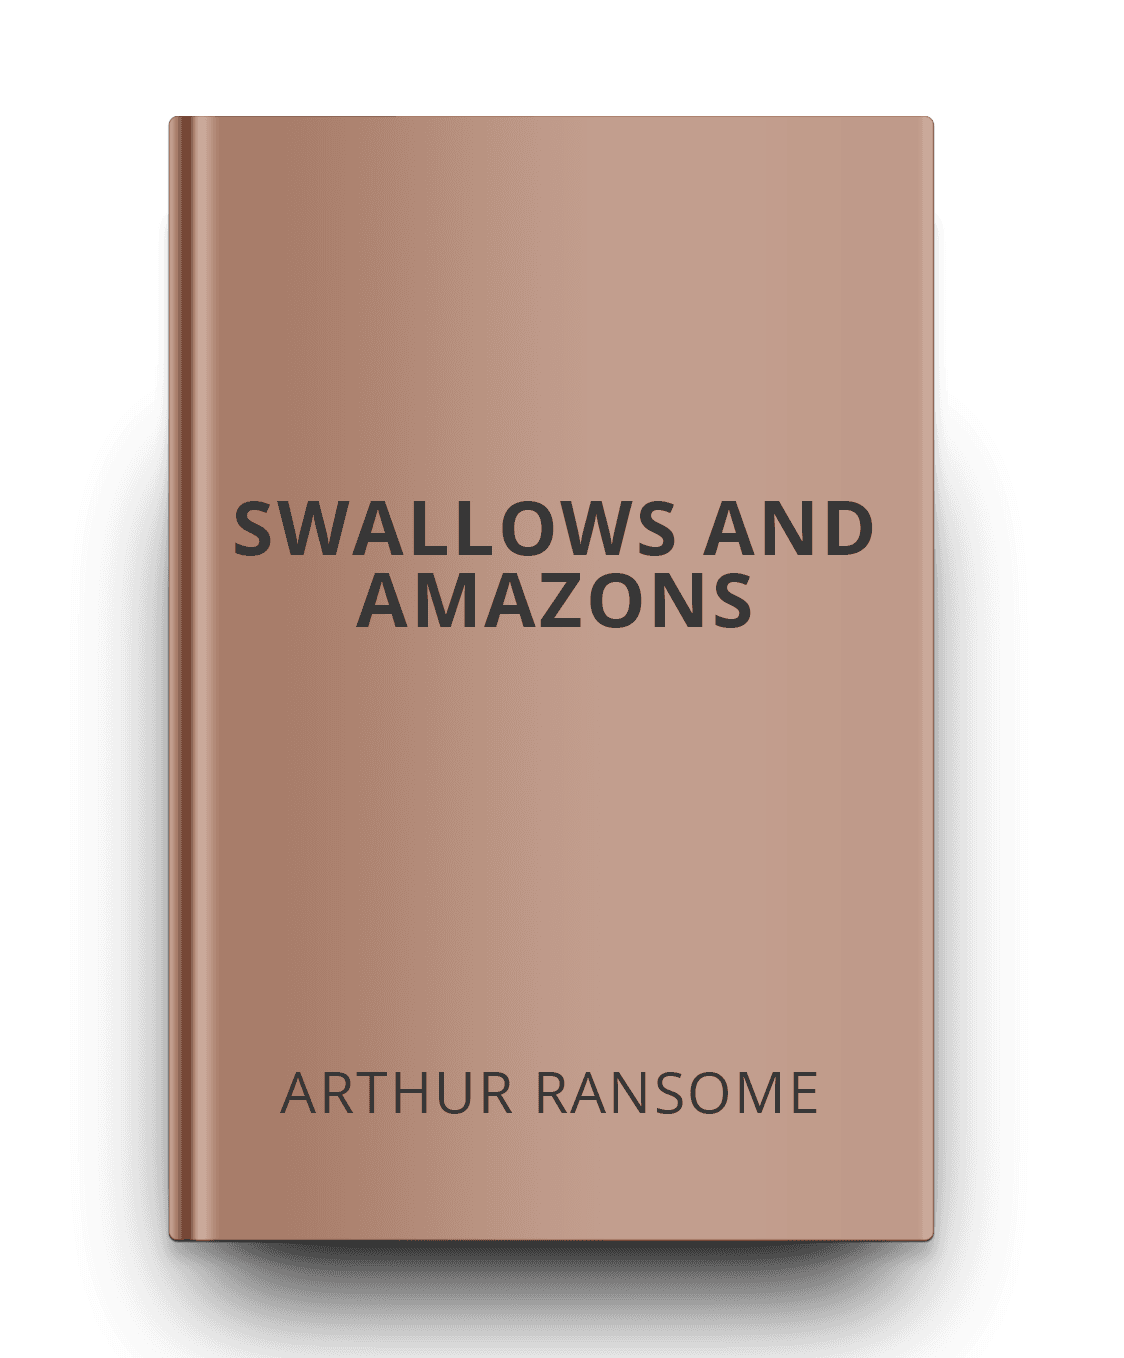 swallows-and-amazons